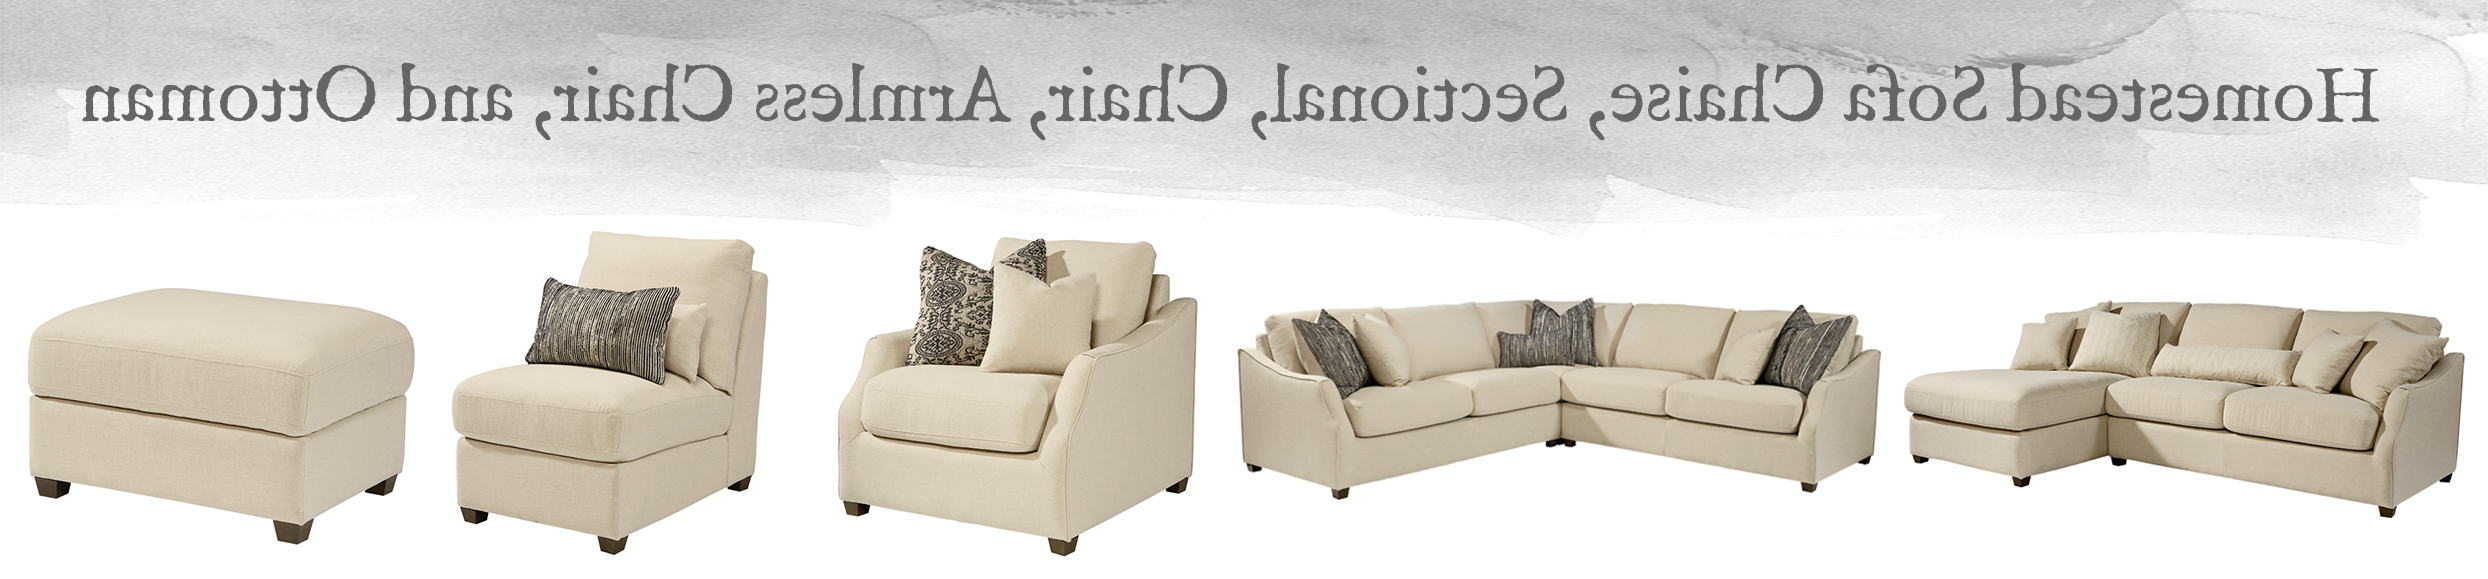 Magnolia Home Preview: Upholstered Living Room Collection (View 16 of 20)